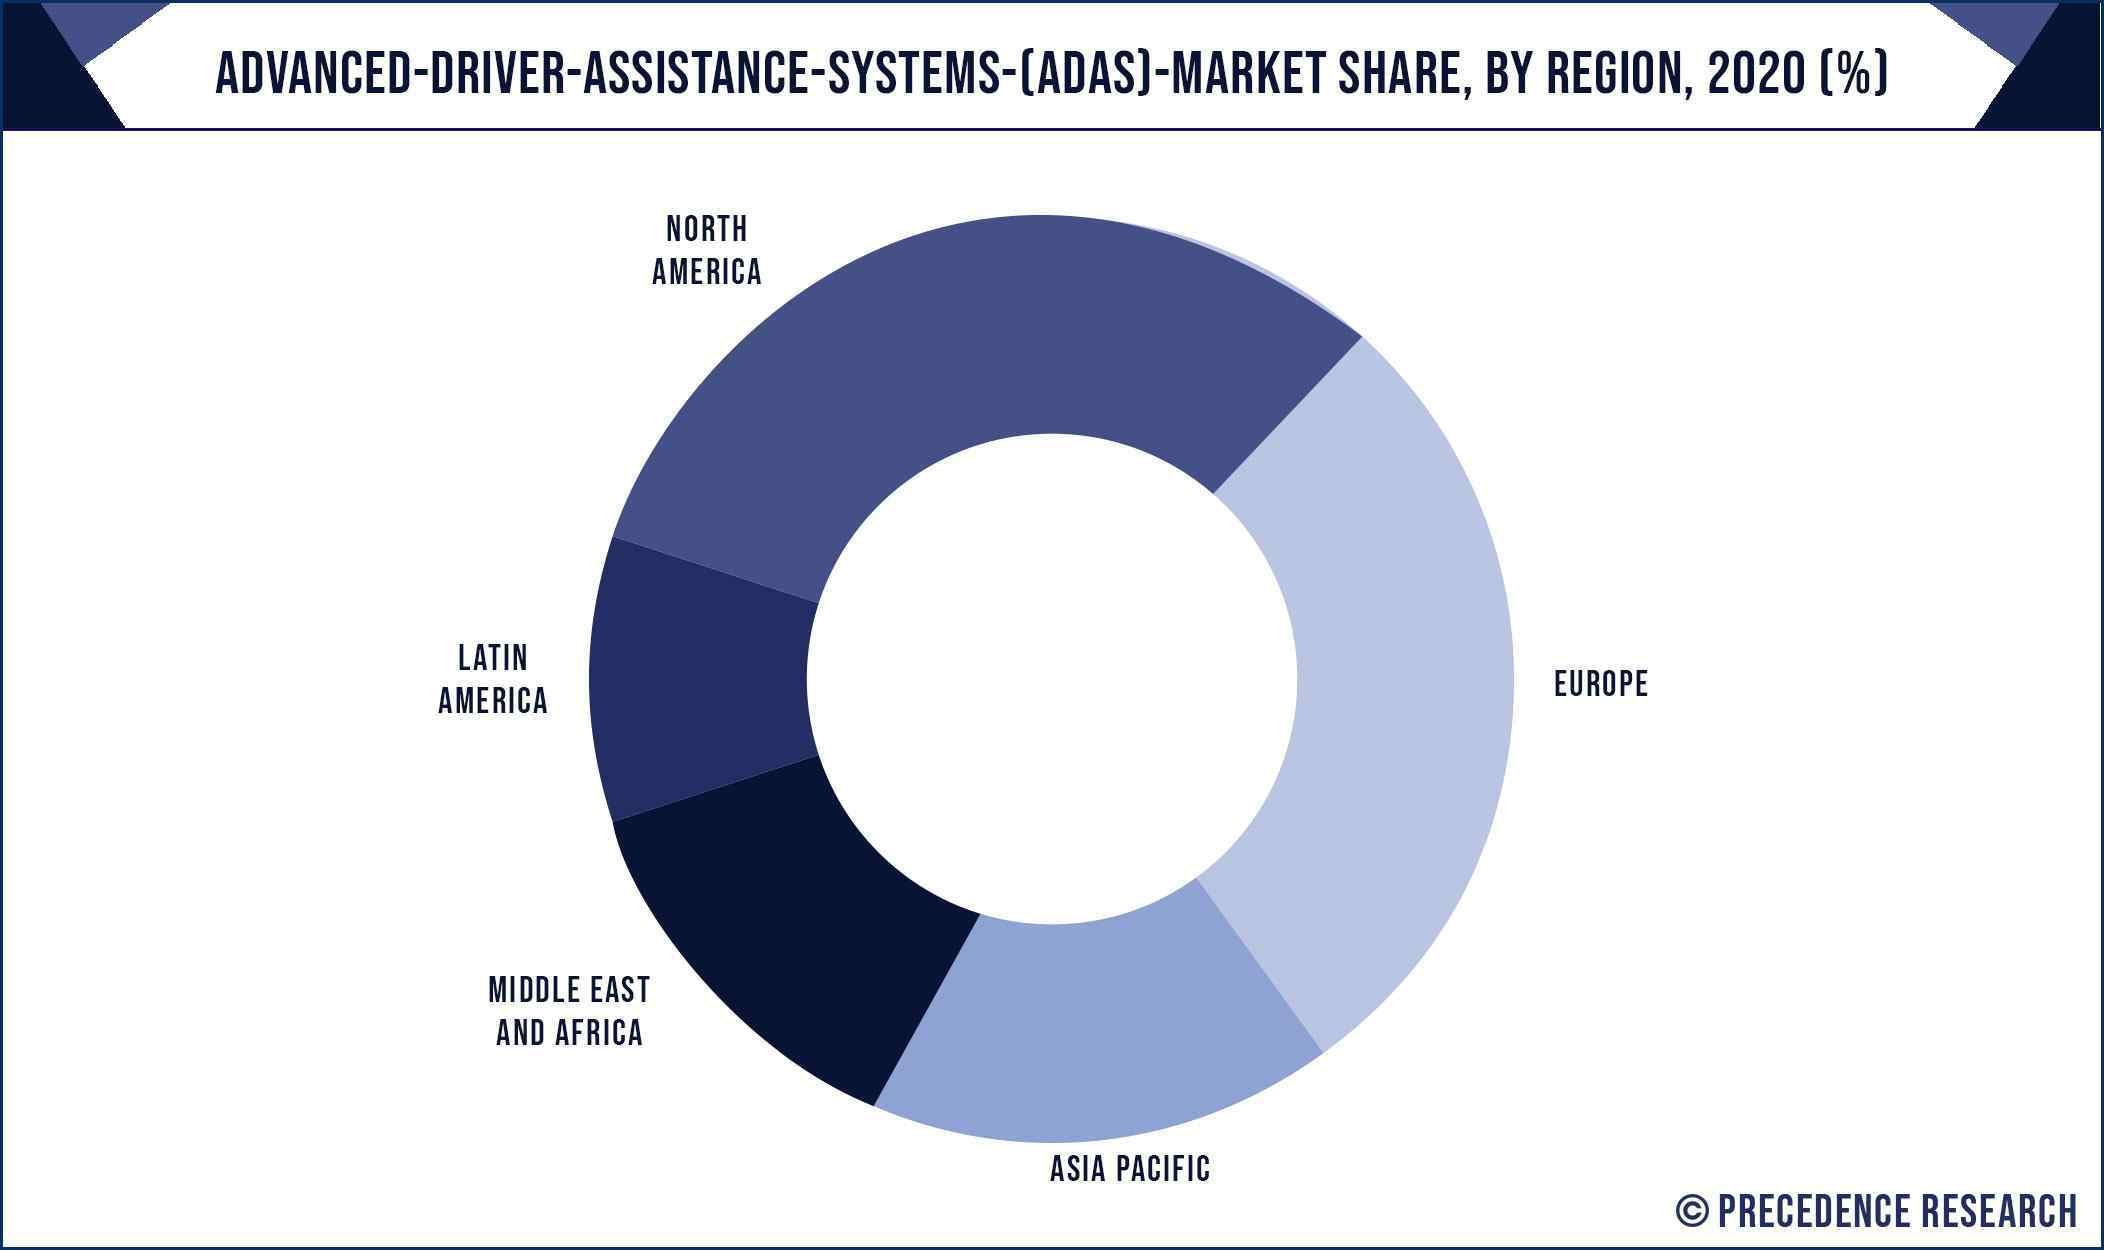 Advanced Driver Assistance Systems (ADAS) Market Share, By Region, 2020 (%)